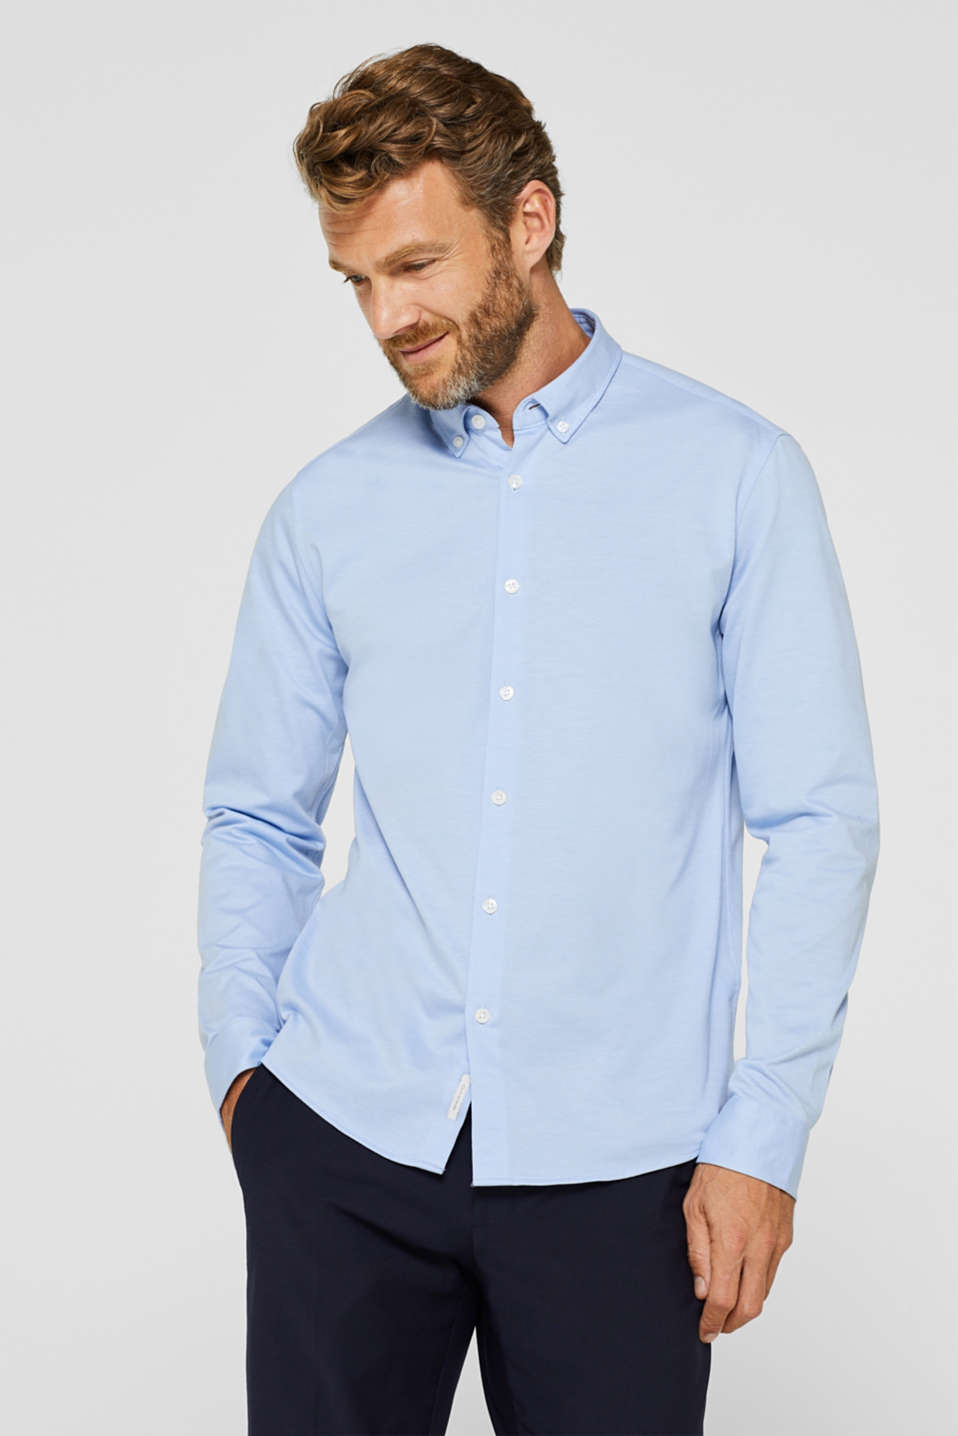 Esprit - Camicia button-down in jersey, 100% cotone